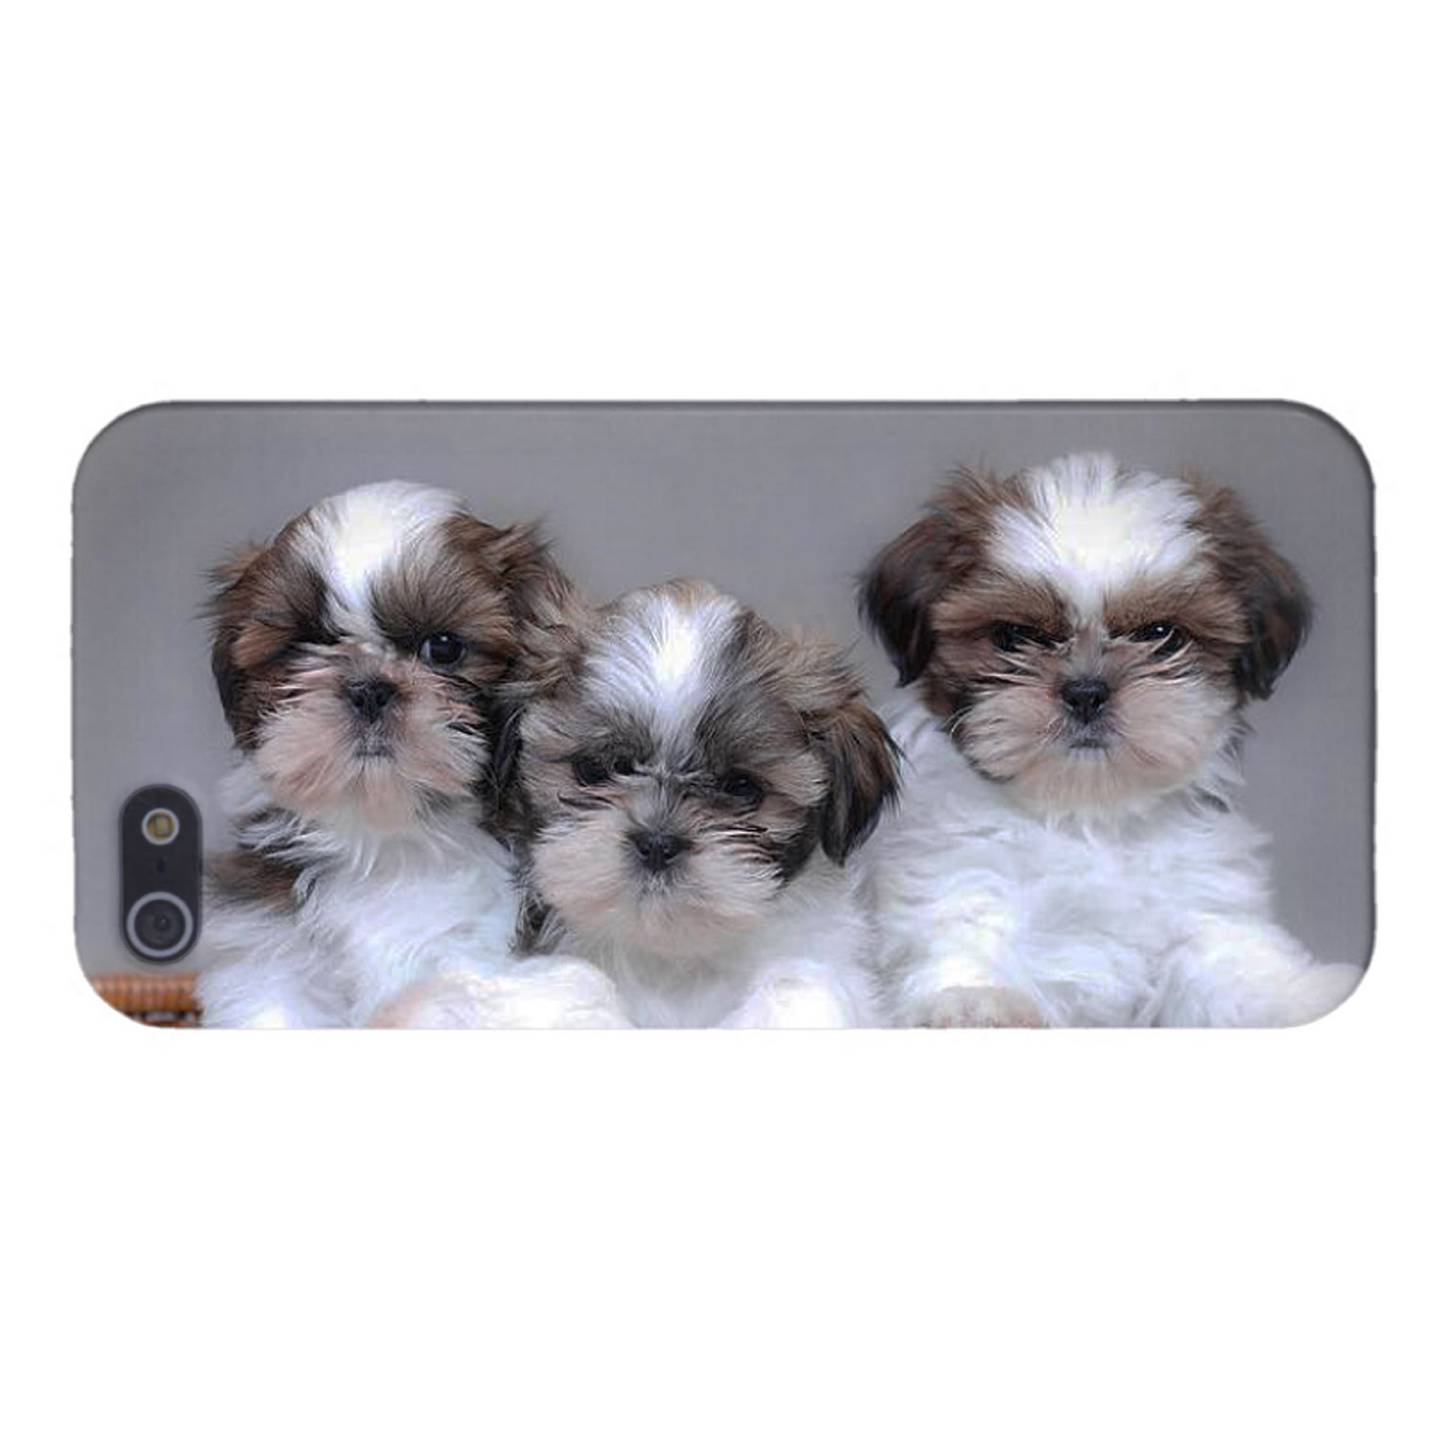 Puppies for Sale! Greenfield Puppies in Lancaster PA has been finding homes for puppies from reputable dog breeders since 2000! Find your puppy today